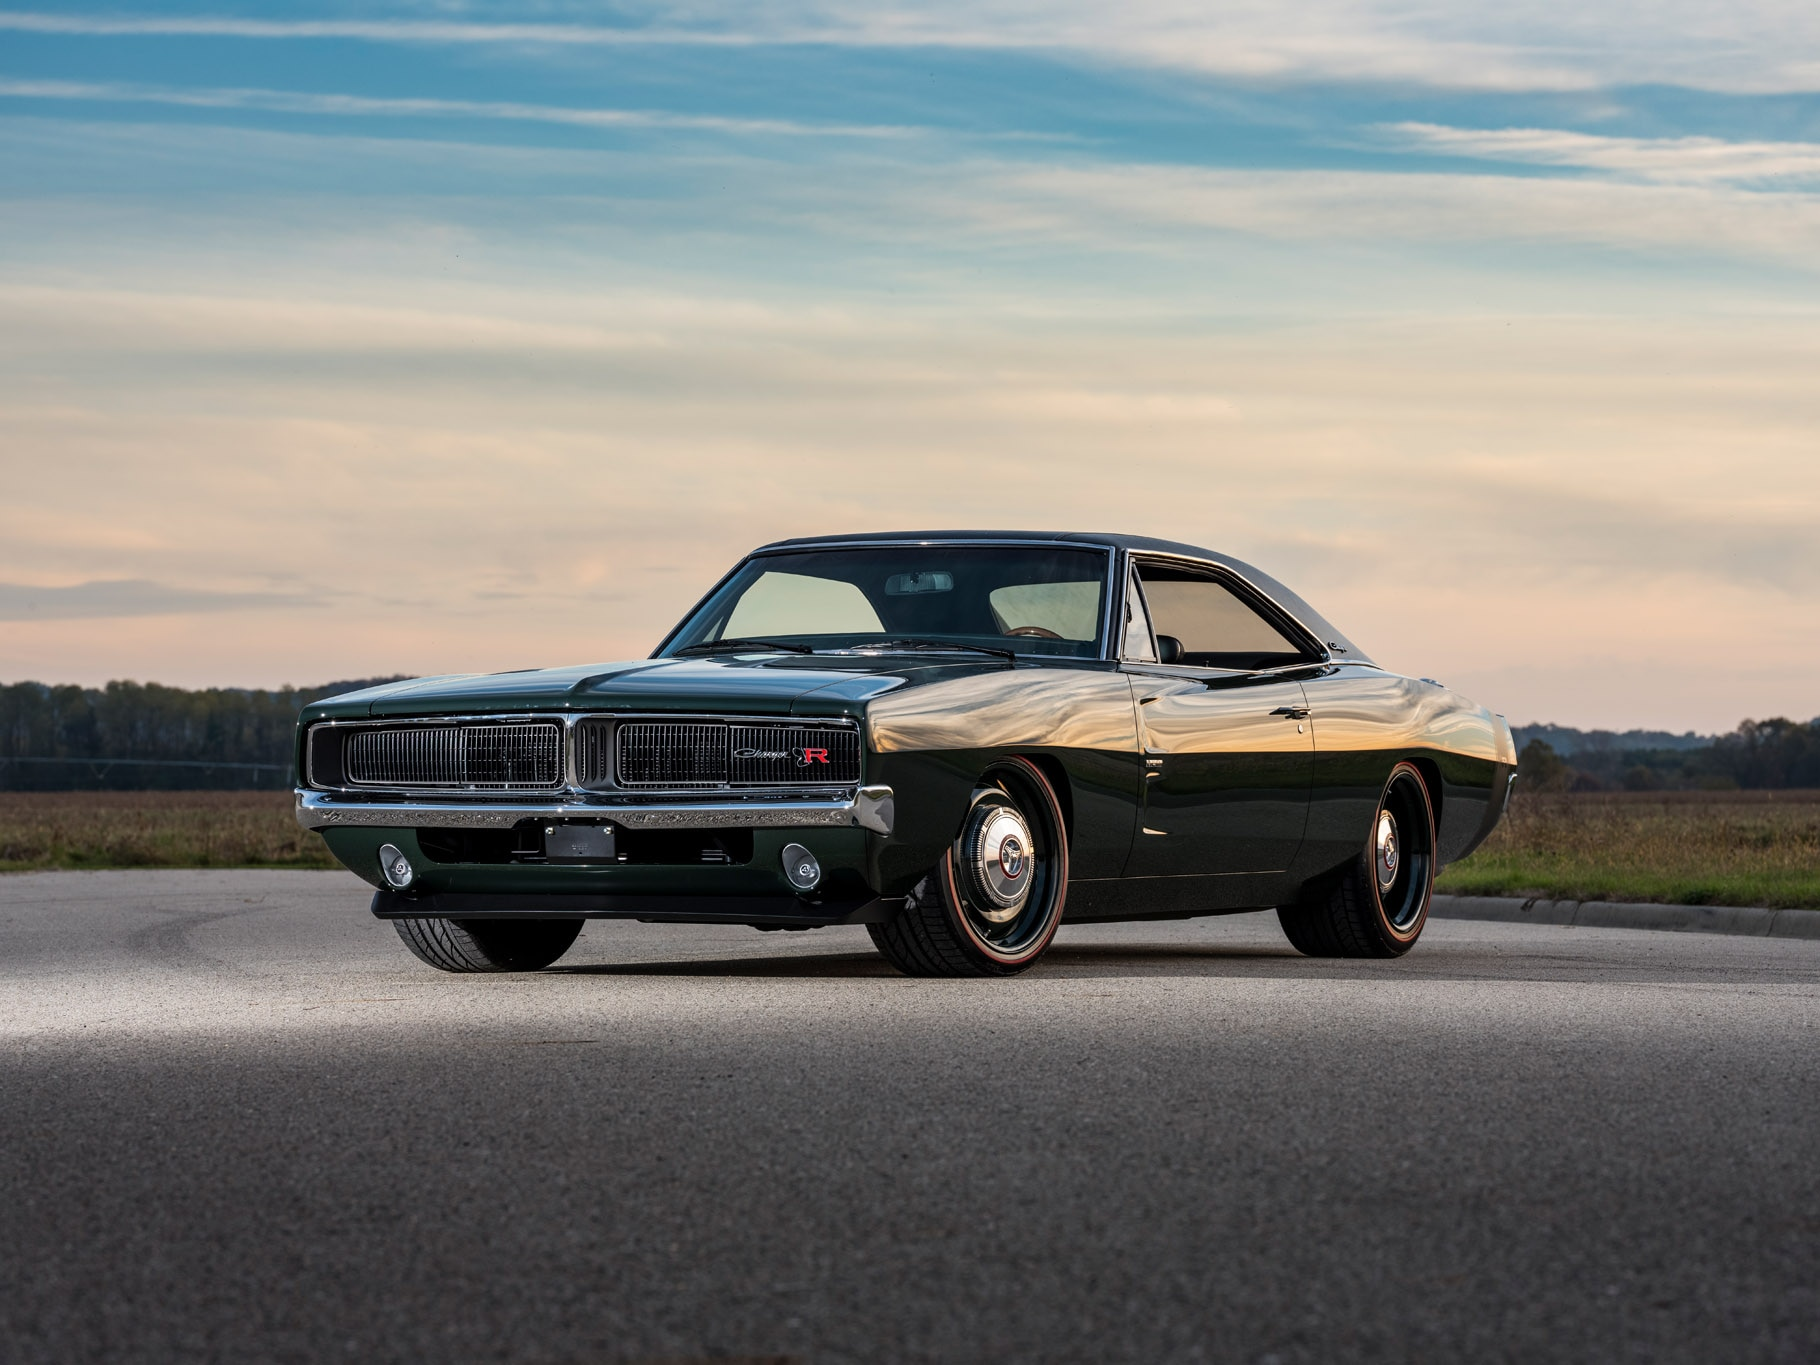 Dodge Charger Car Wallpapers Ringbrothers 1969 Dodge Charger Restomod Is An Exercise In